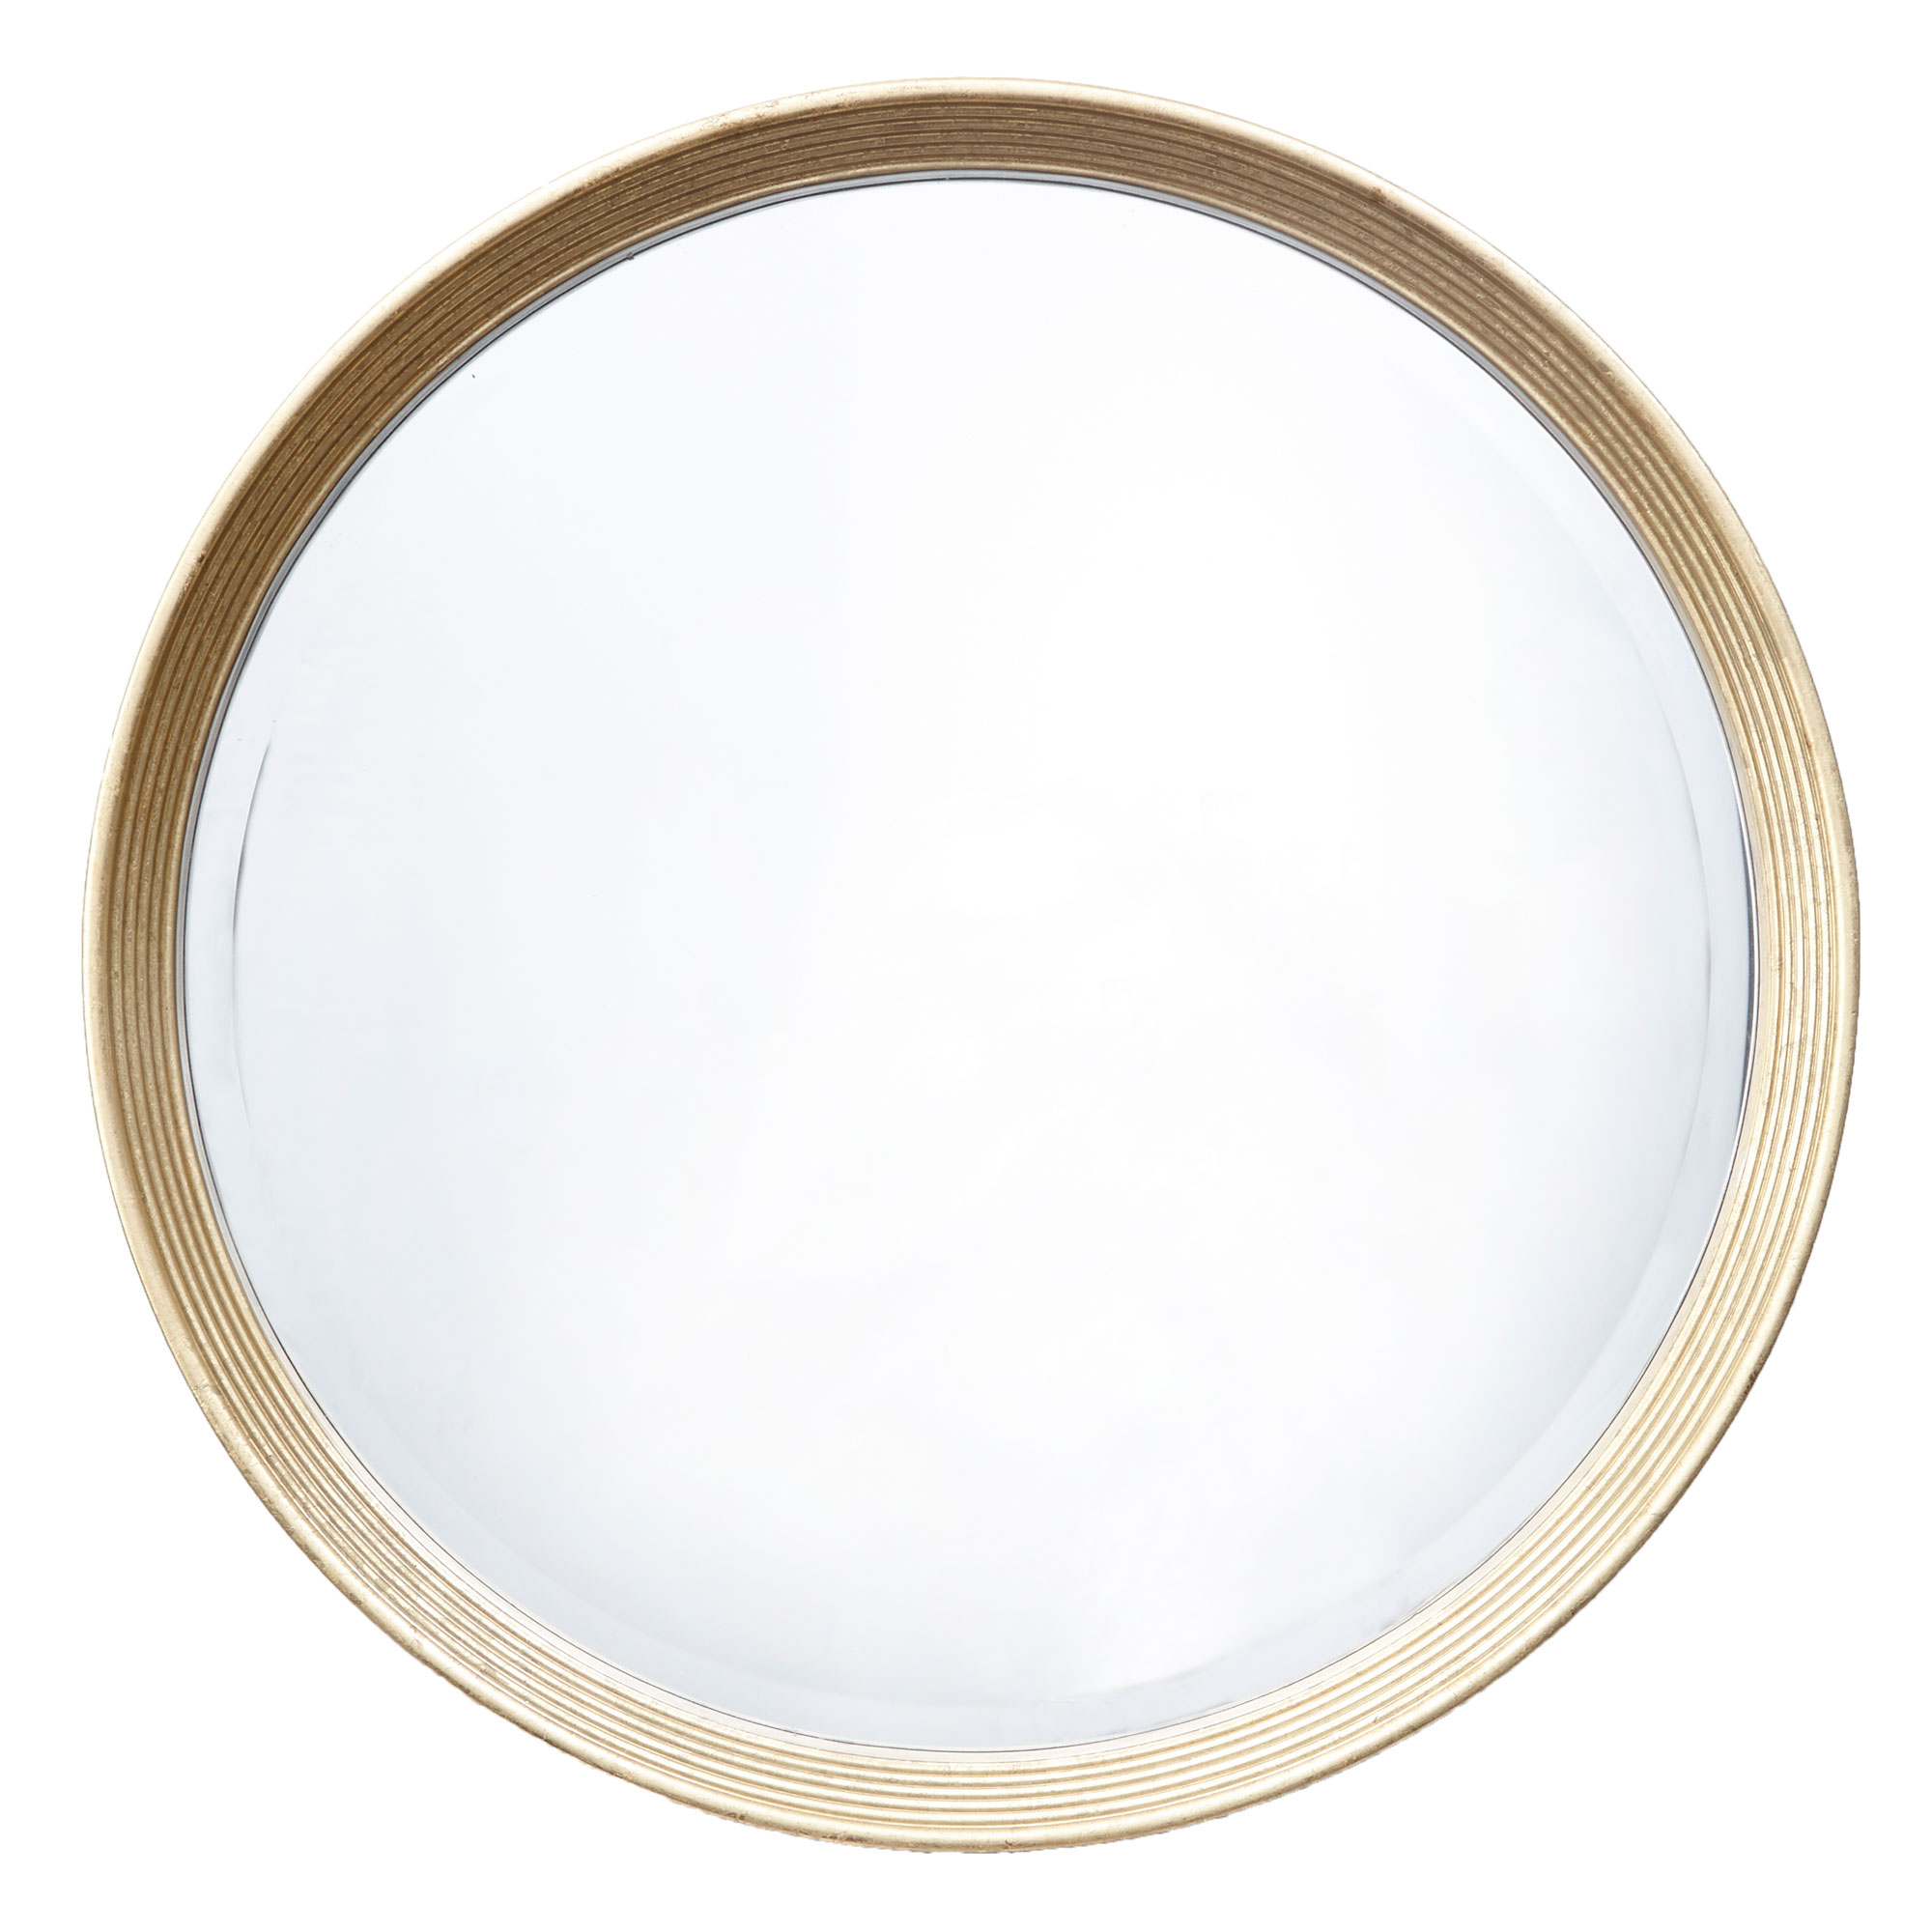 7060 the lana mirror round brass